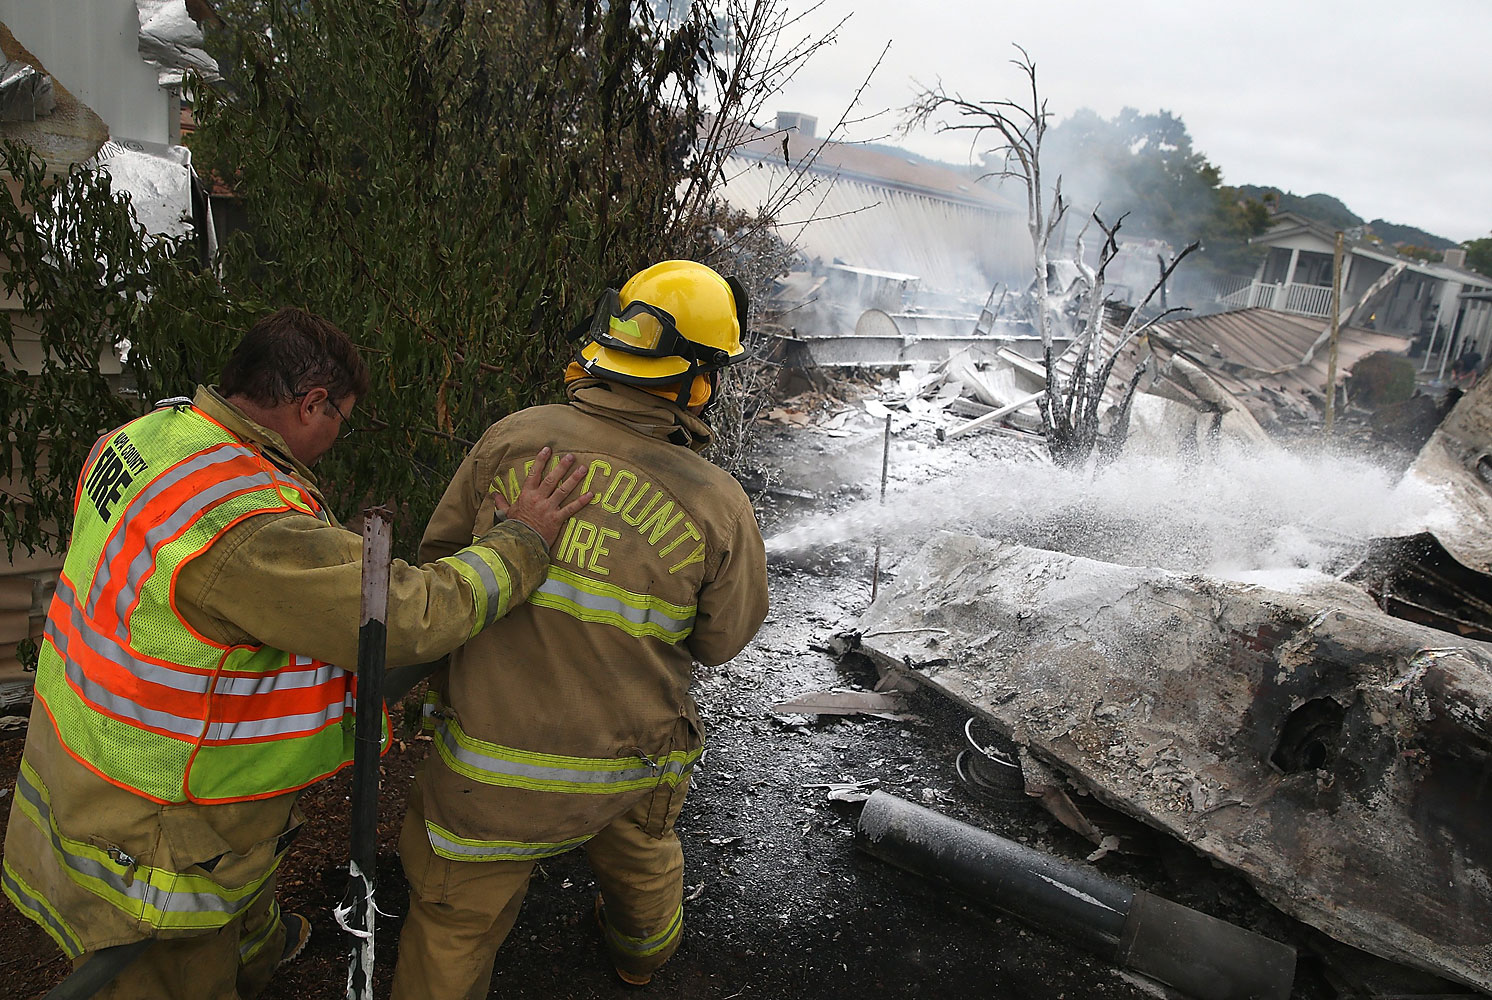 Napa County firefighters spray foam on hot spots from a fire at a mobile home park following the earthquake, in Napa, Calif.